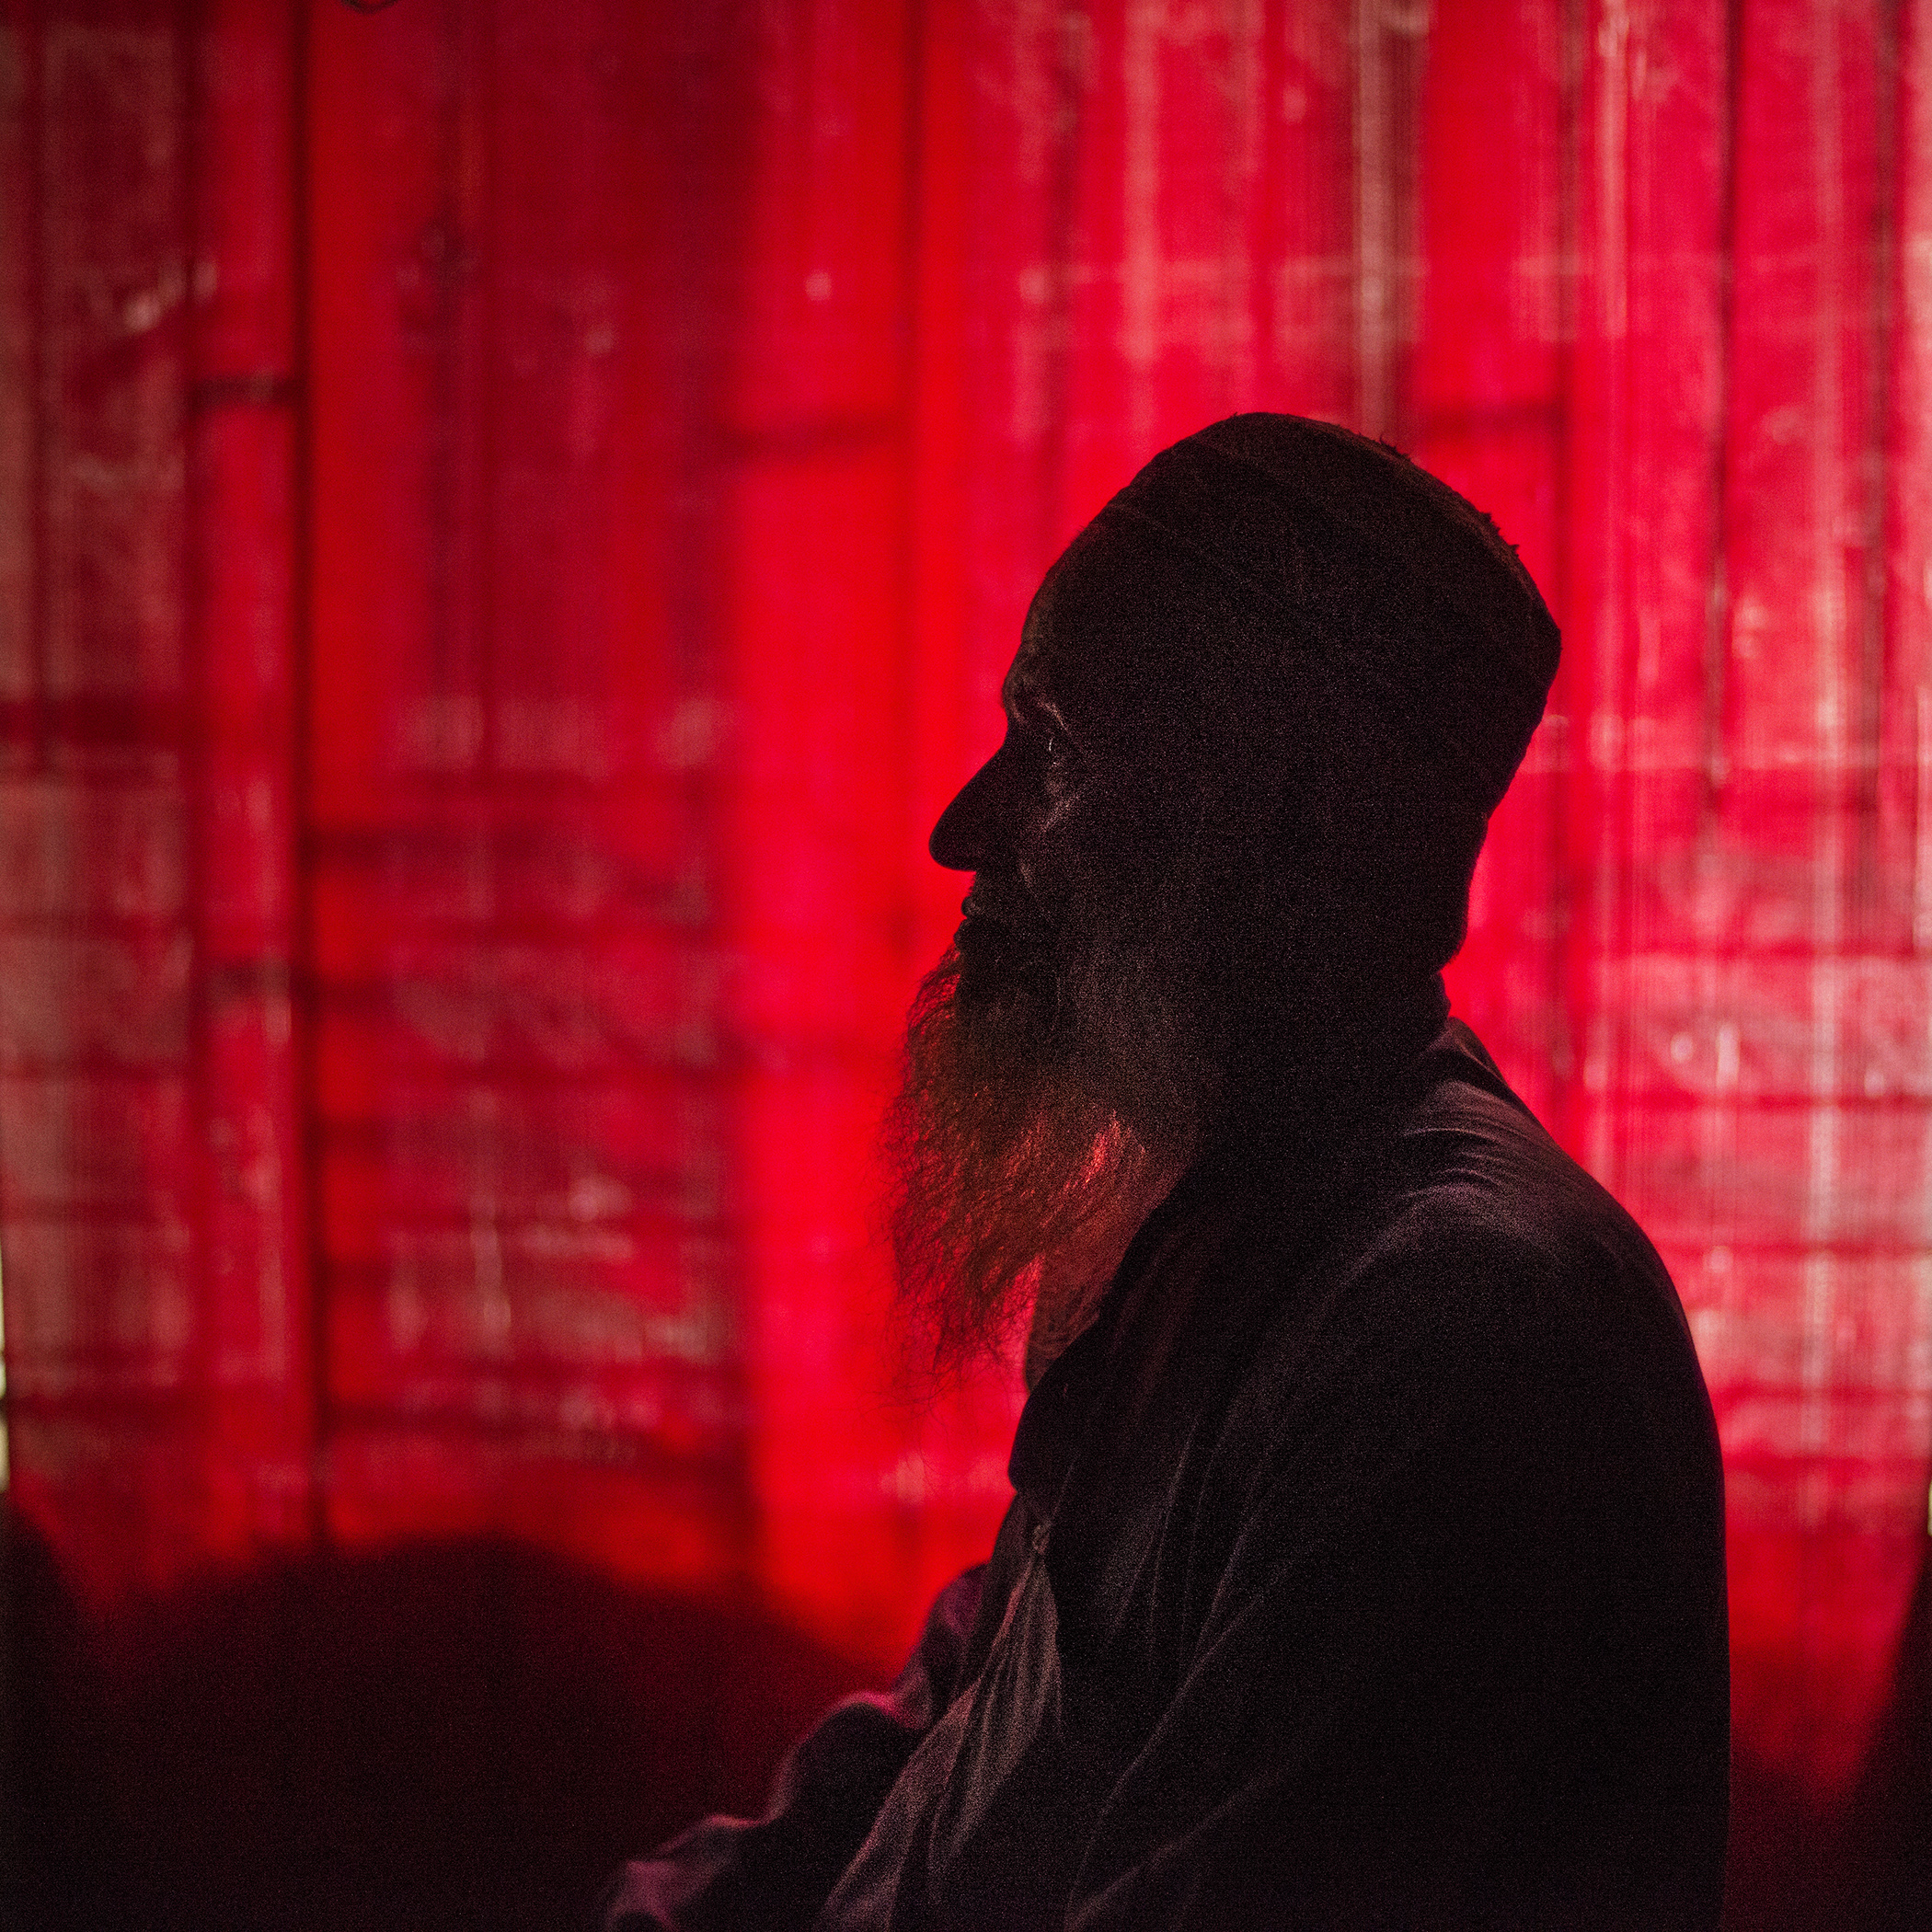 Fazle Rabbi's father, Fajlul Haq Khan, feels the emptiness of his son's presence in his life but he always prays for his son to be at peace wherever he may now be.